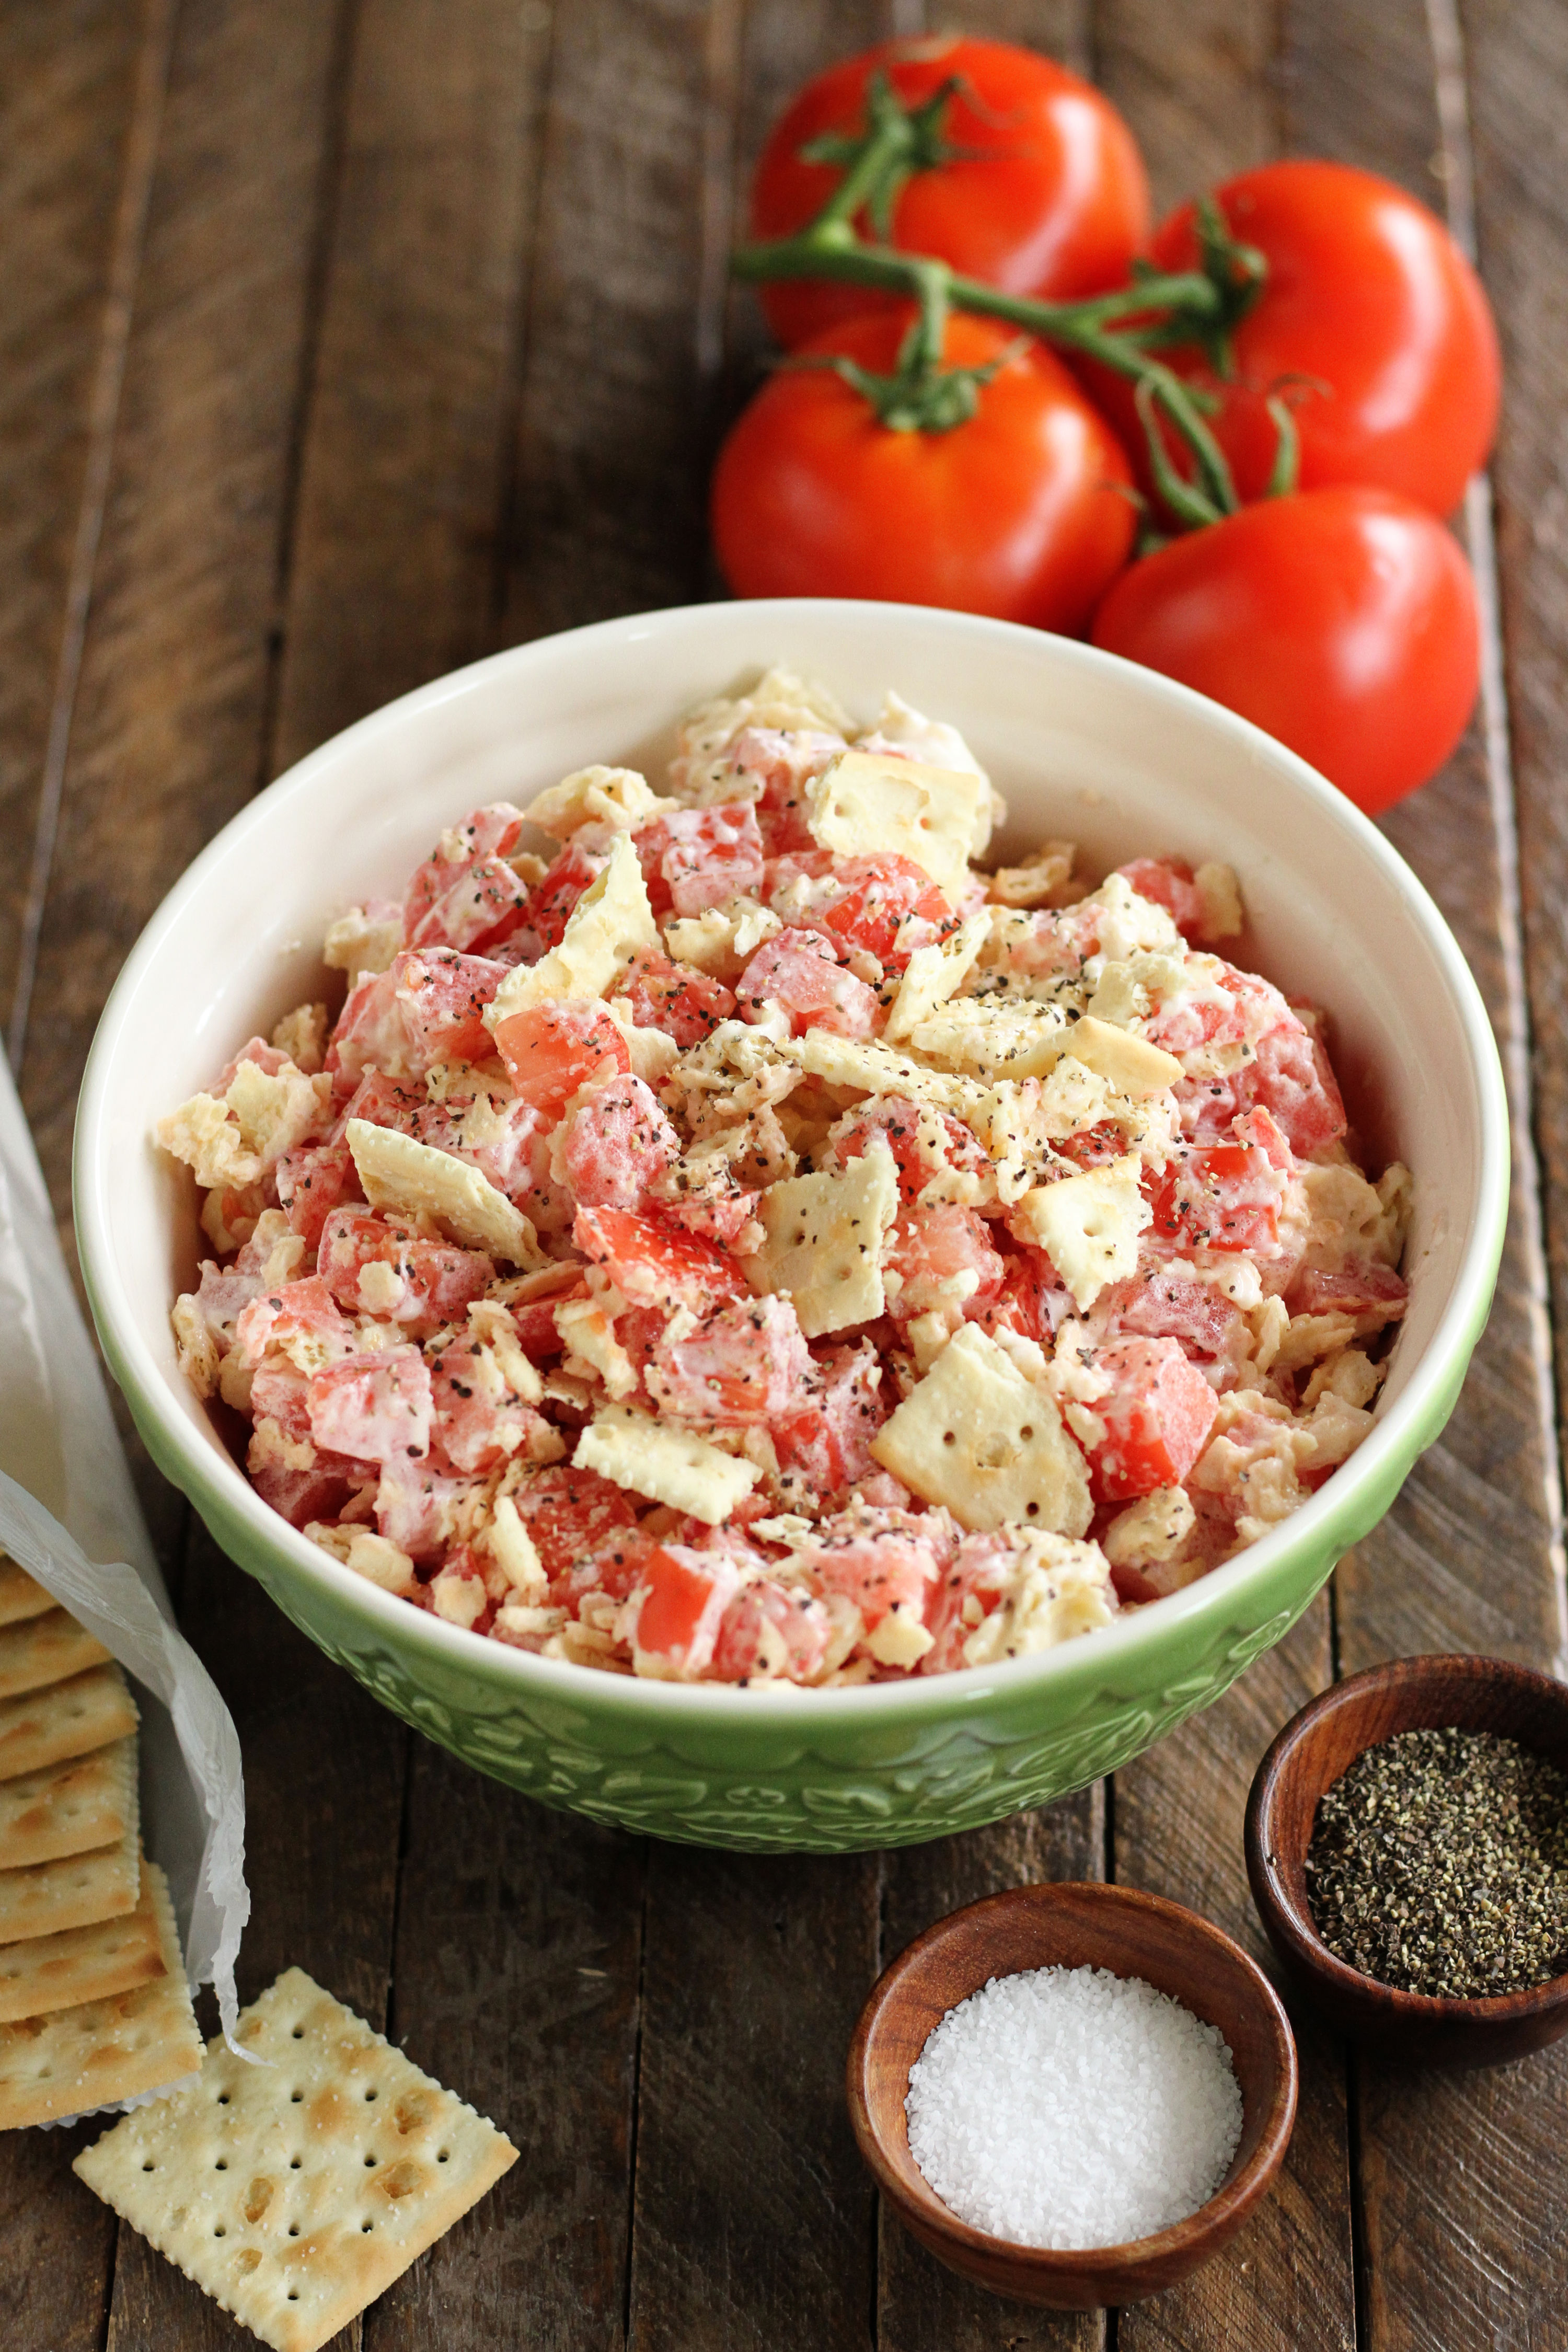 Saltines Are the Key to This Southern Tomato Salad